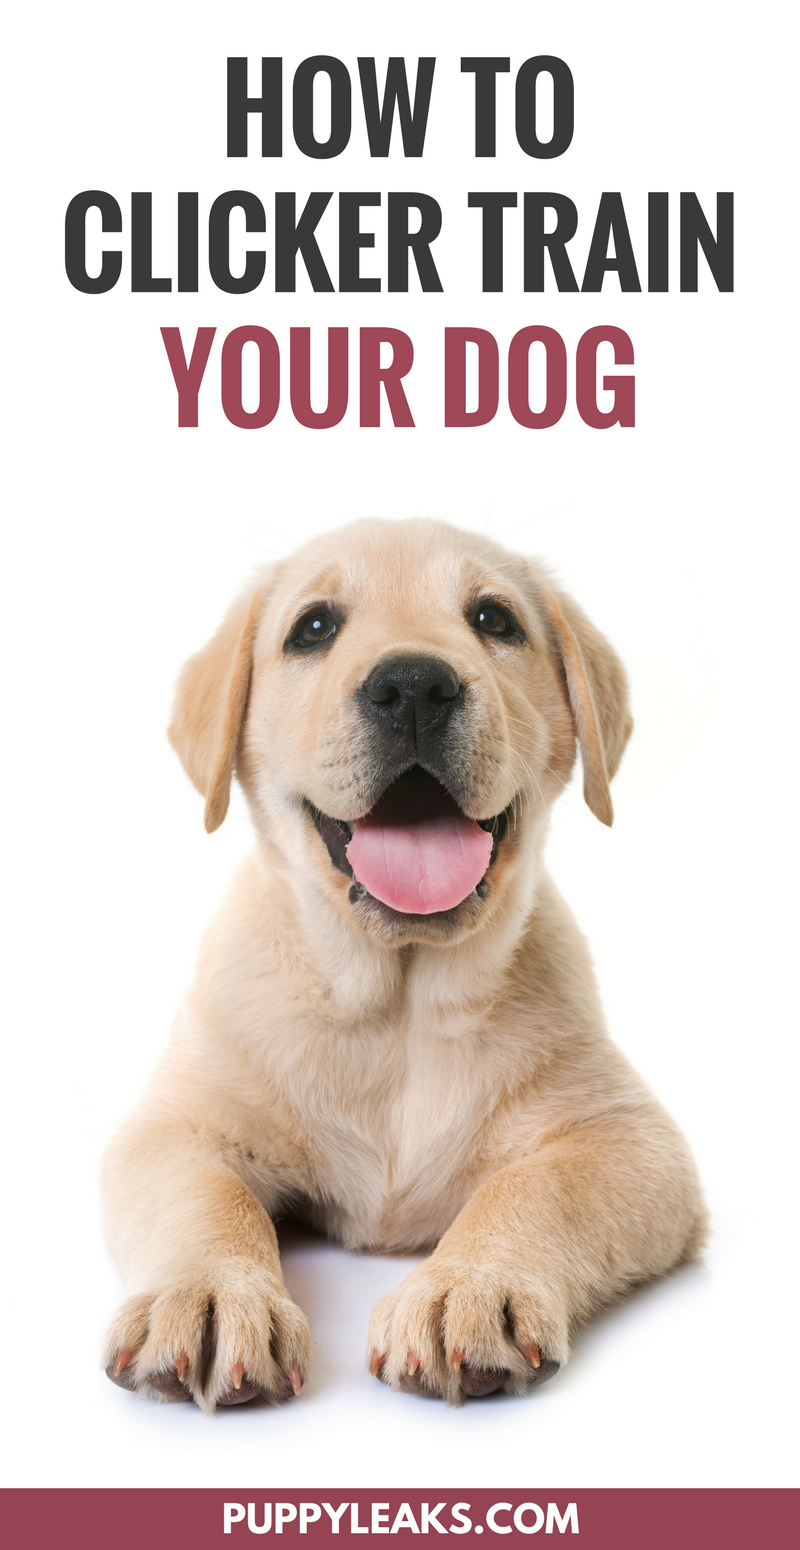 How to Clicker Train Your Dog. How to get started with clicker training your new dog.